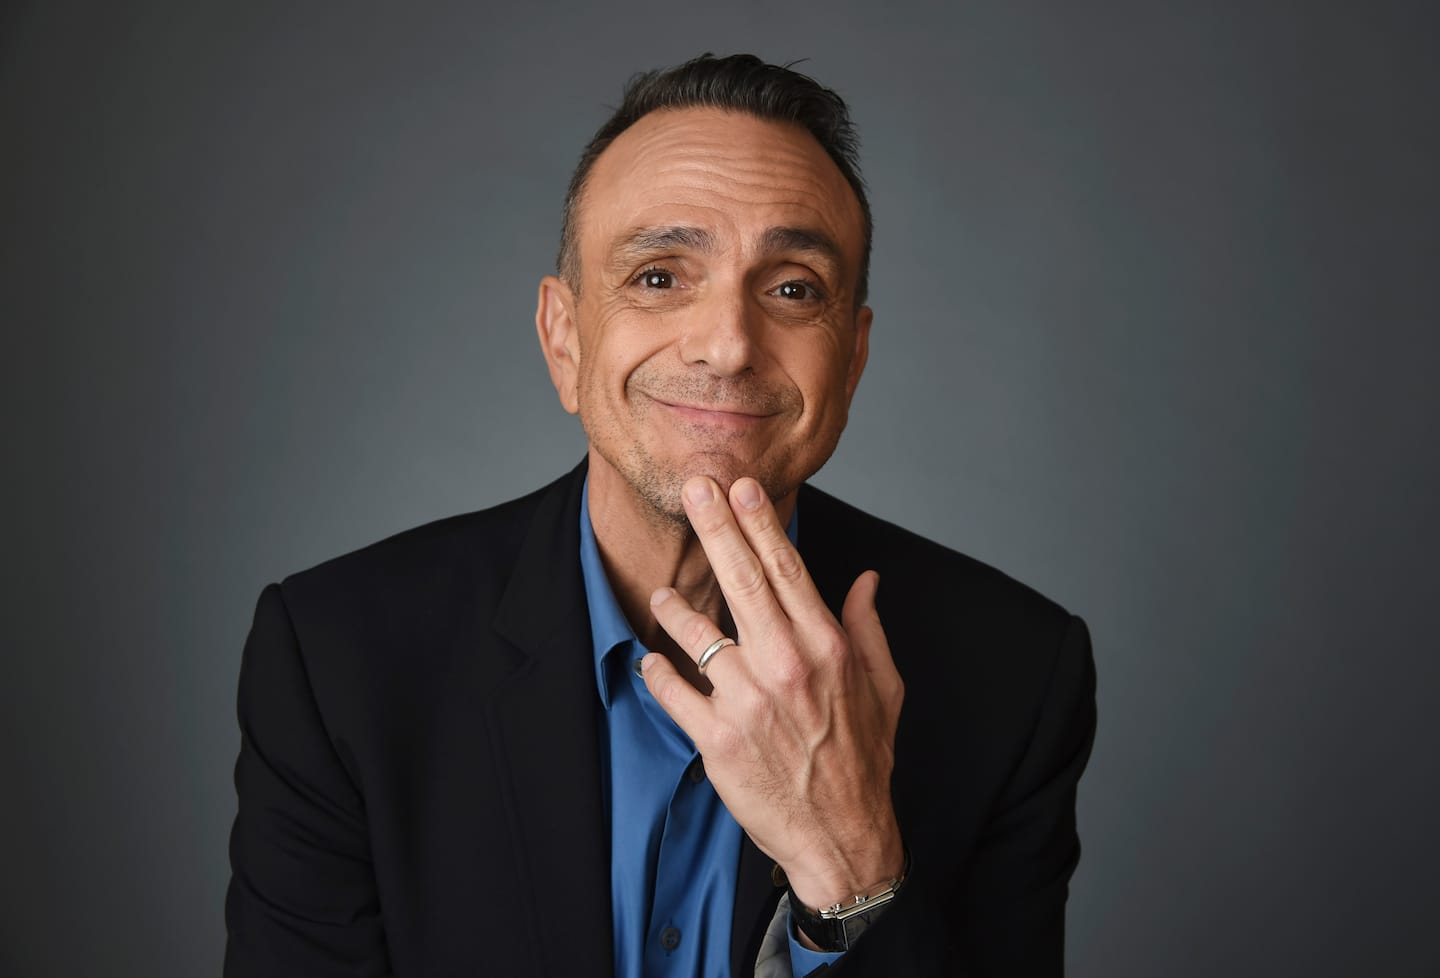 Hank Azaria apologizes for playing Apu on 'The Simpsons' for three decades